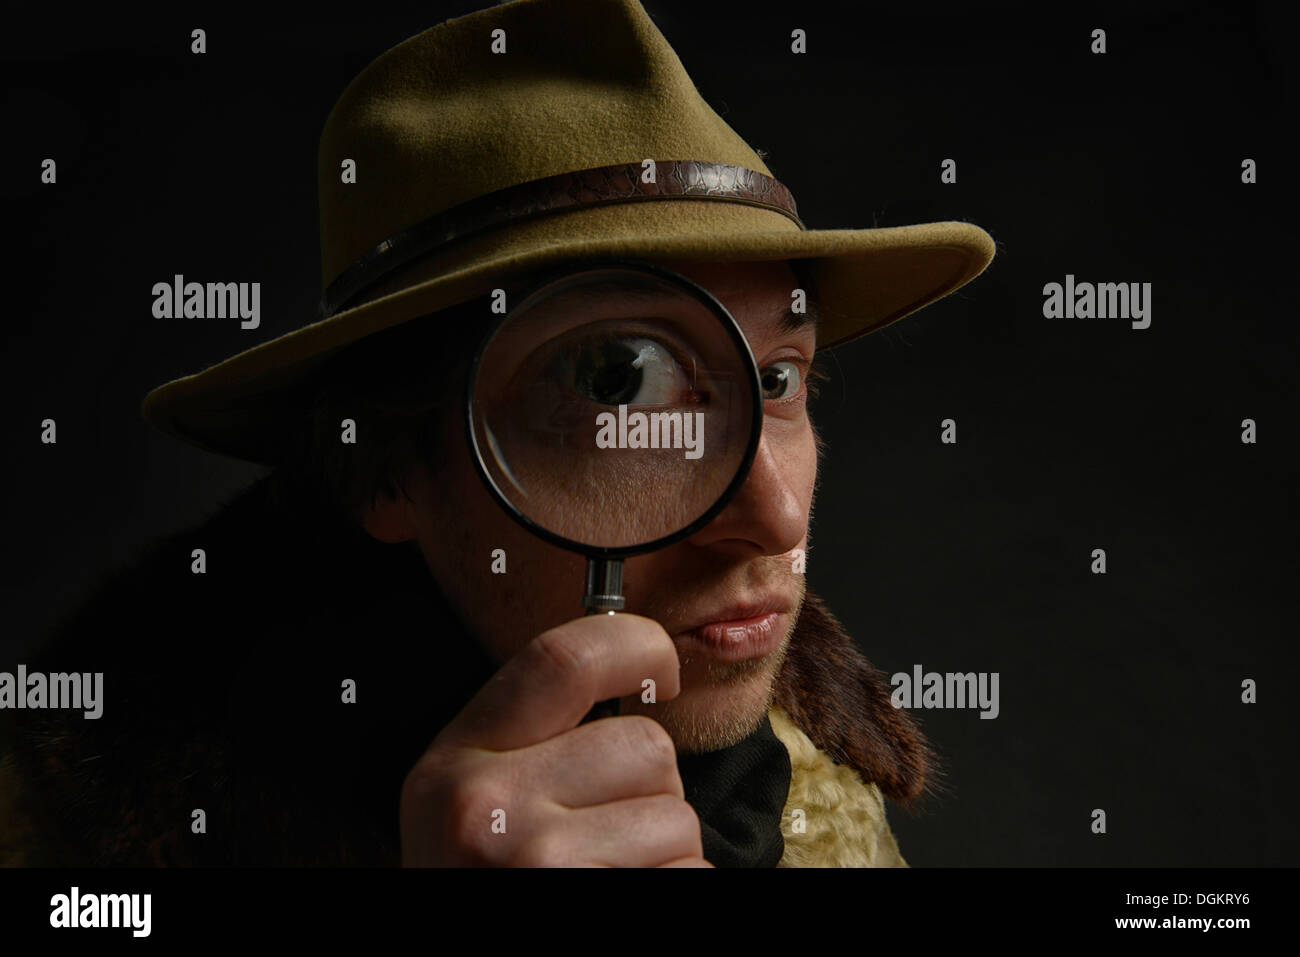 Man holding magnifying glass in front of his eye, Switzerland Stock Photo